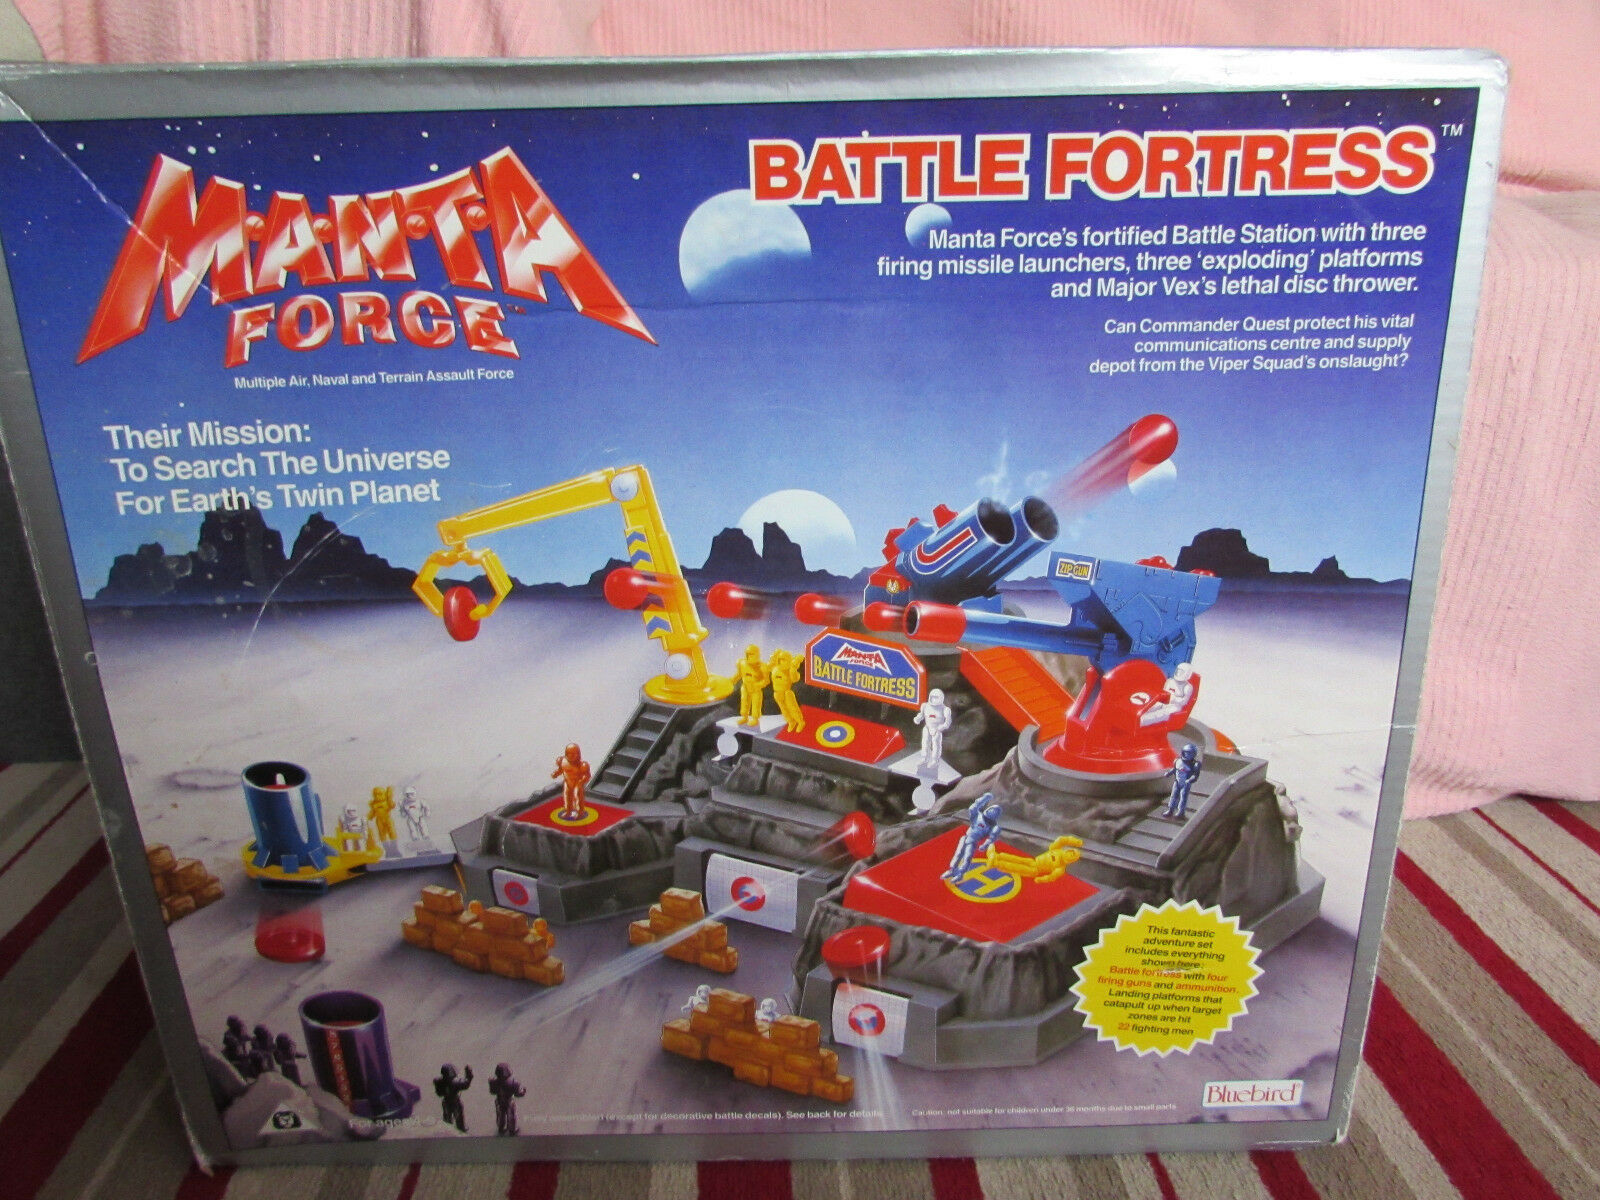 1988 blueEBIRD TOYS M.A.N.T.A FORCE BATTLE FORTRESS NOT COMPLETE